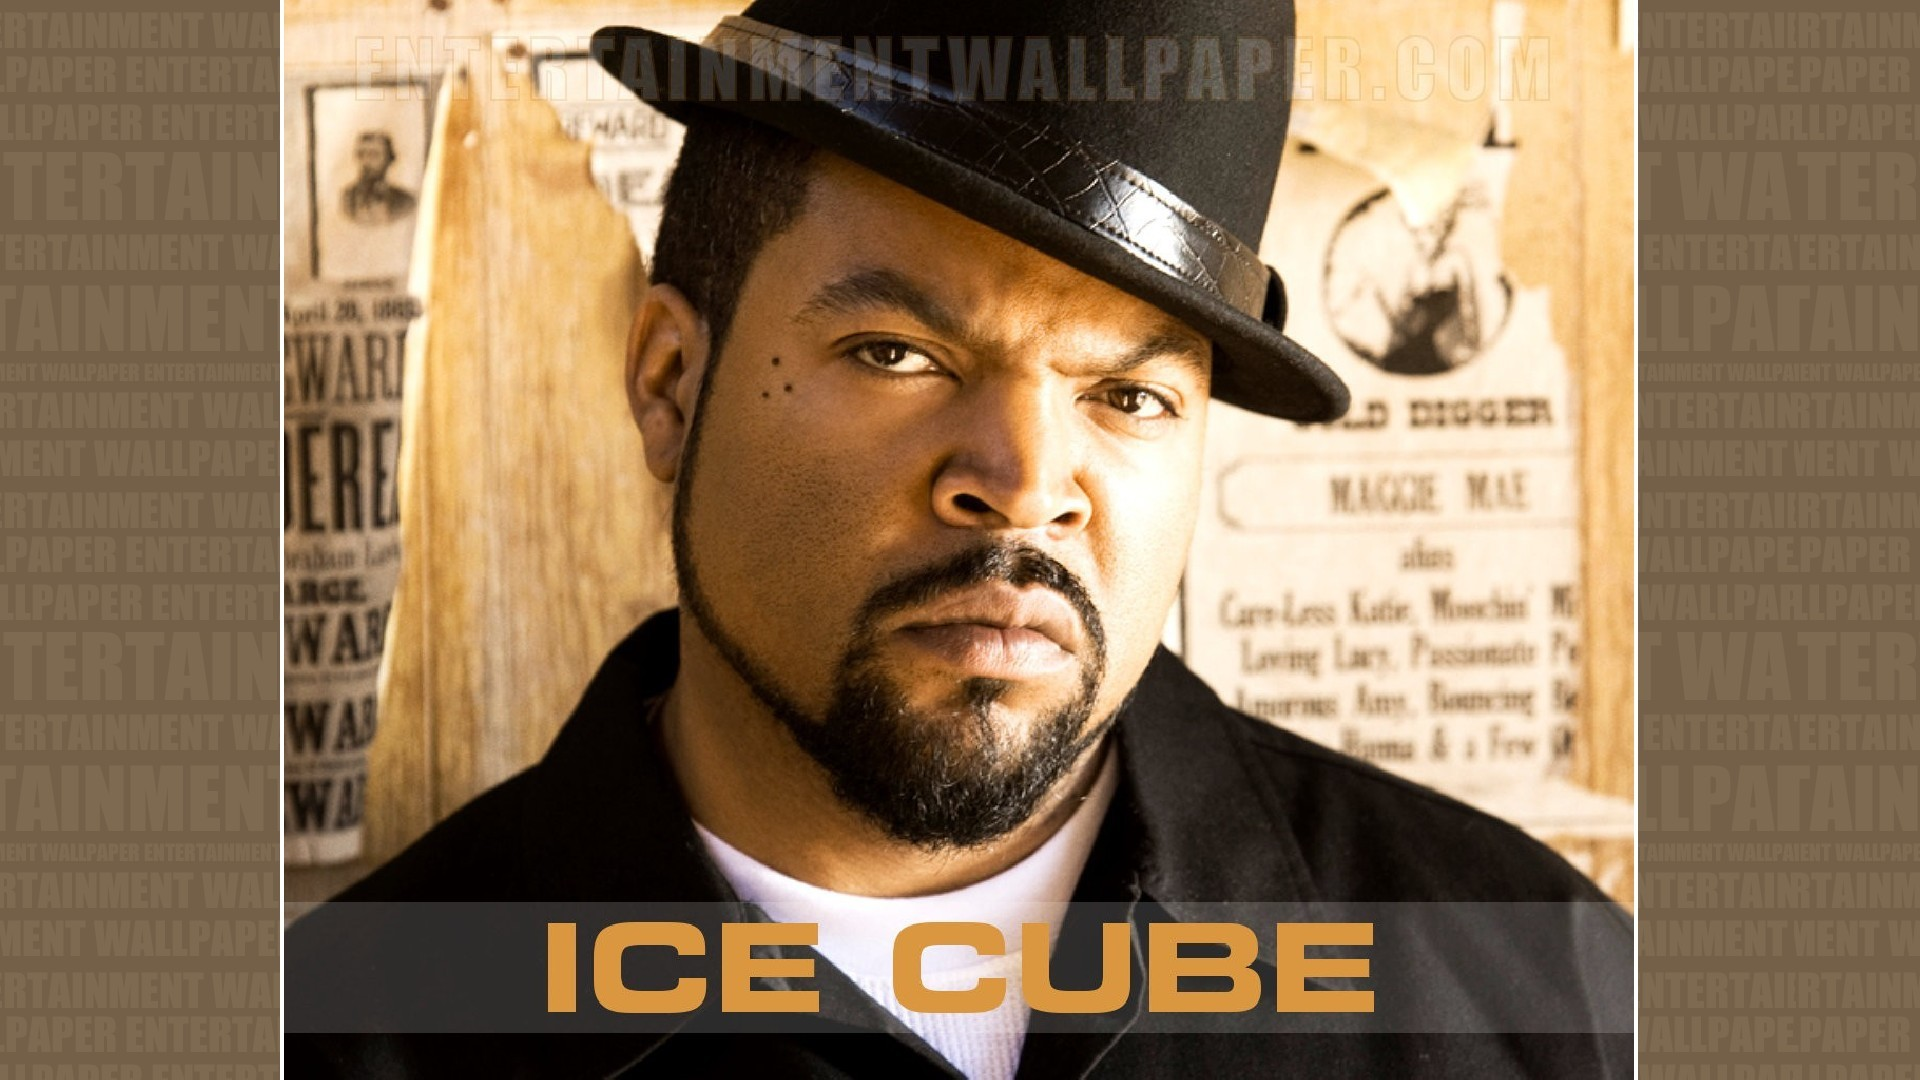 Ice Cube Wallpaper – Original size, download now.